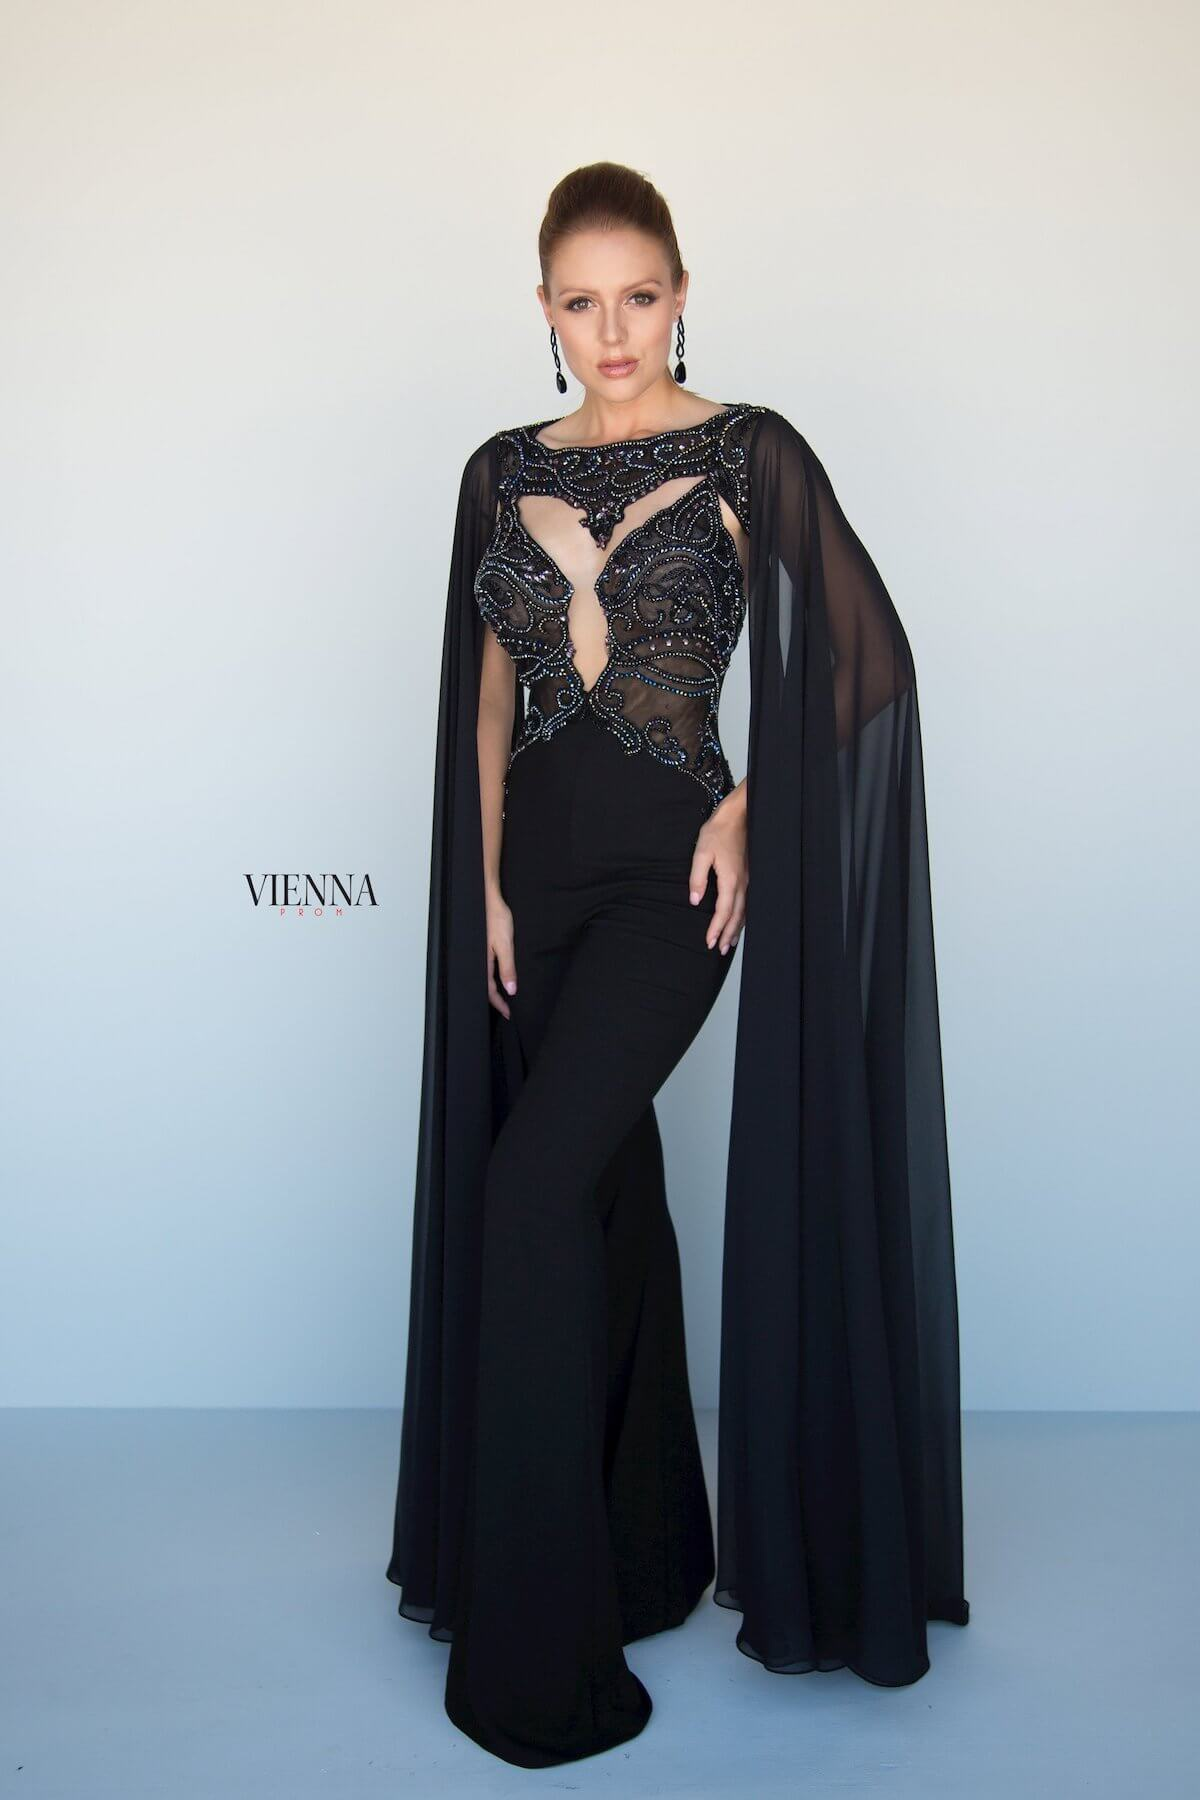 Style 9964 Vienna Black Size 00 Sleeves Pageant Tall Height Romper/Jumpsuit Dress on Queenly